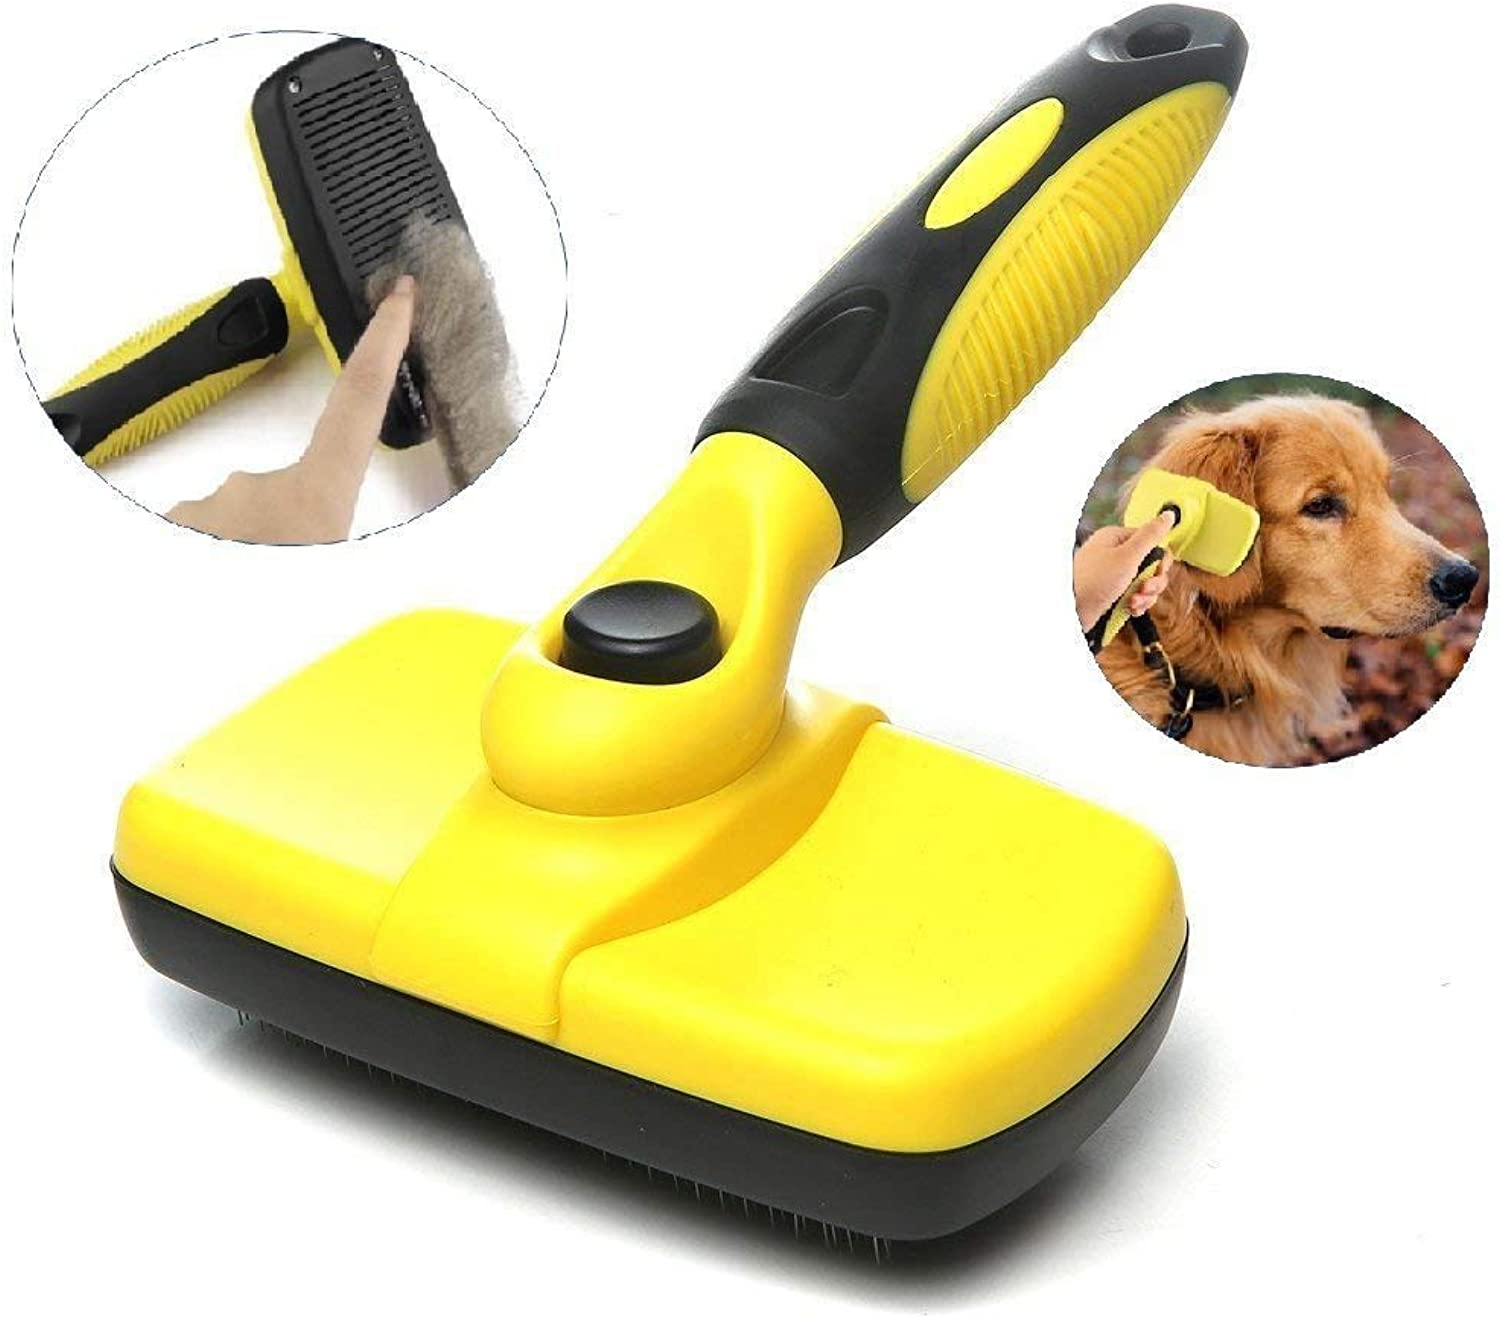 Pet Grooming Brush SelfCleaning Slicker Brushes Best Shedding Tools for Grooming Cats and Dogs with Long Thick Hair